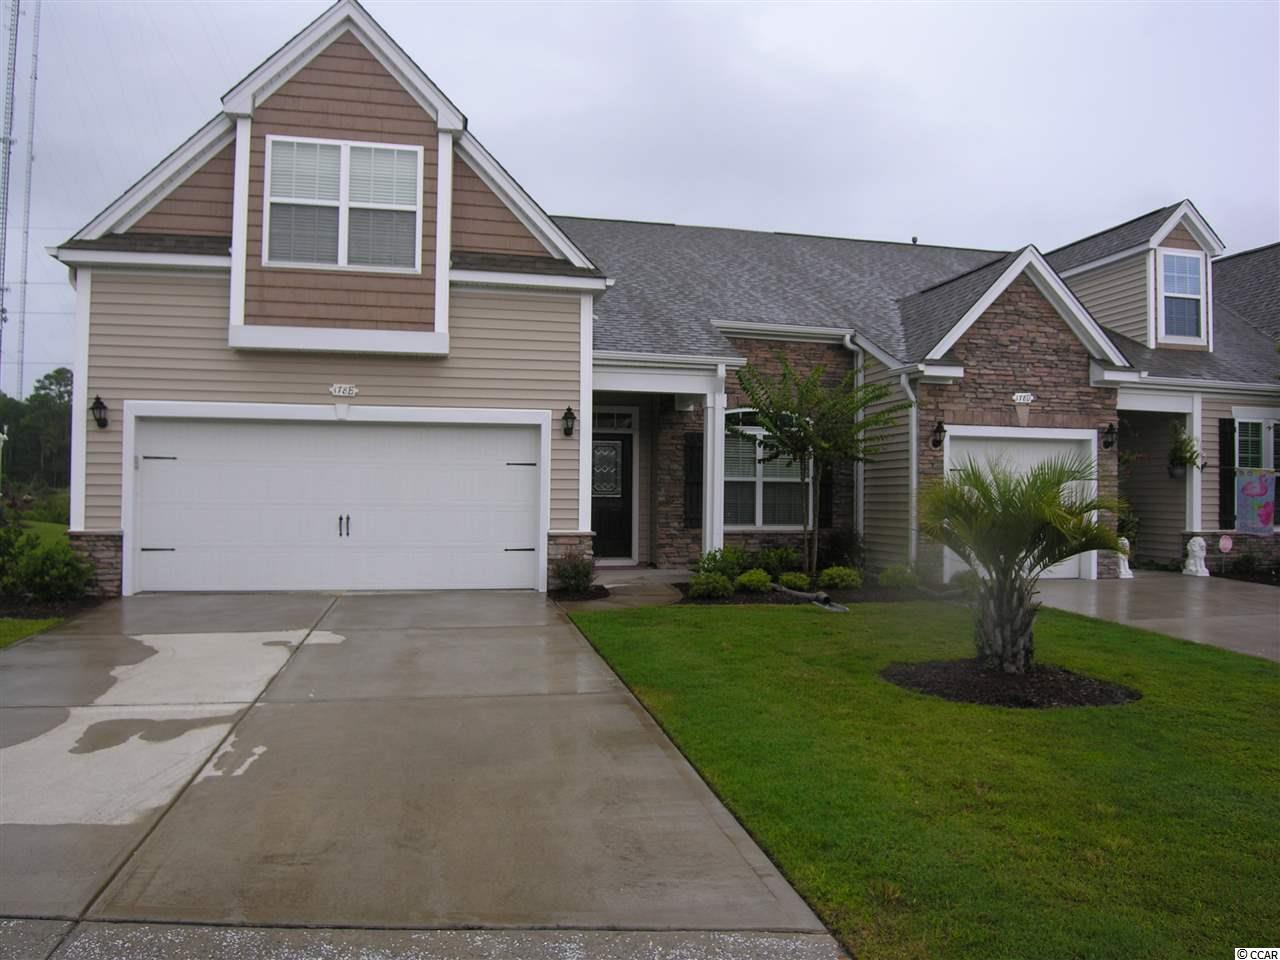 Townhouse for Sale at 178 E Parmelee Drive 178 E Parmelee Drive Murrells Inlet, South Carolina 29576 United States